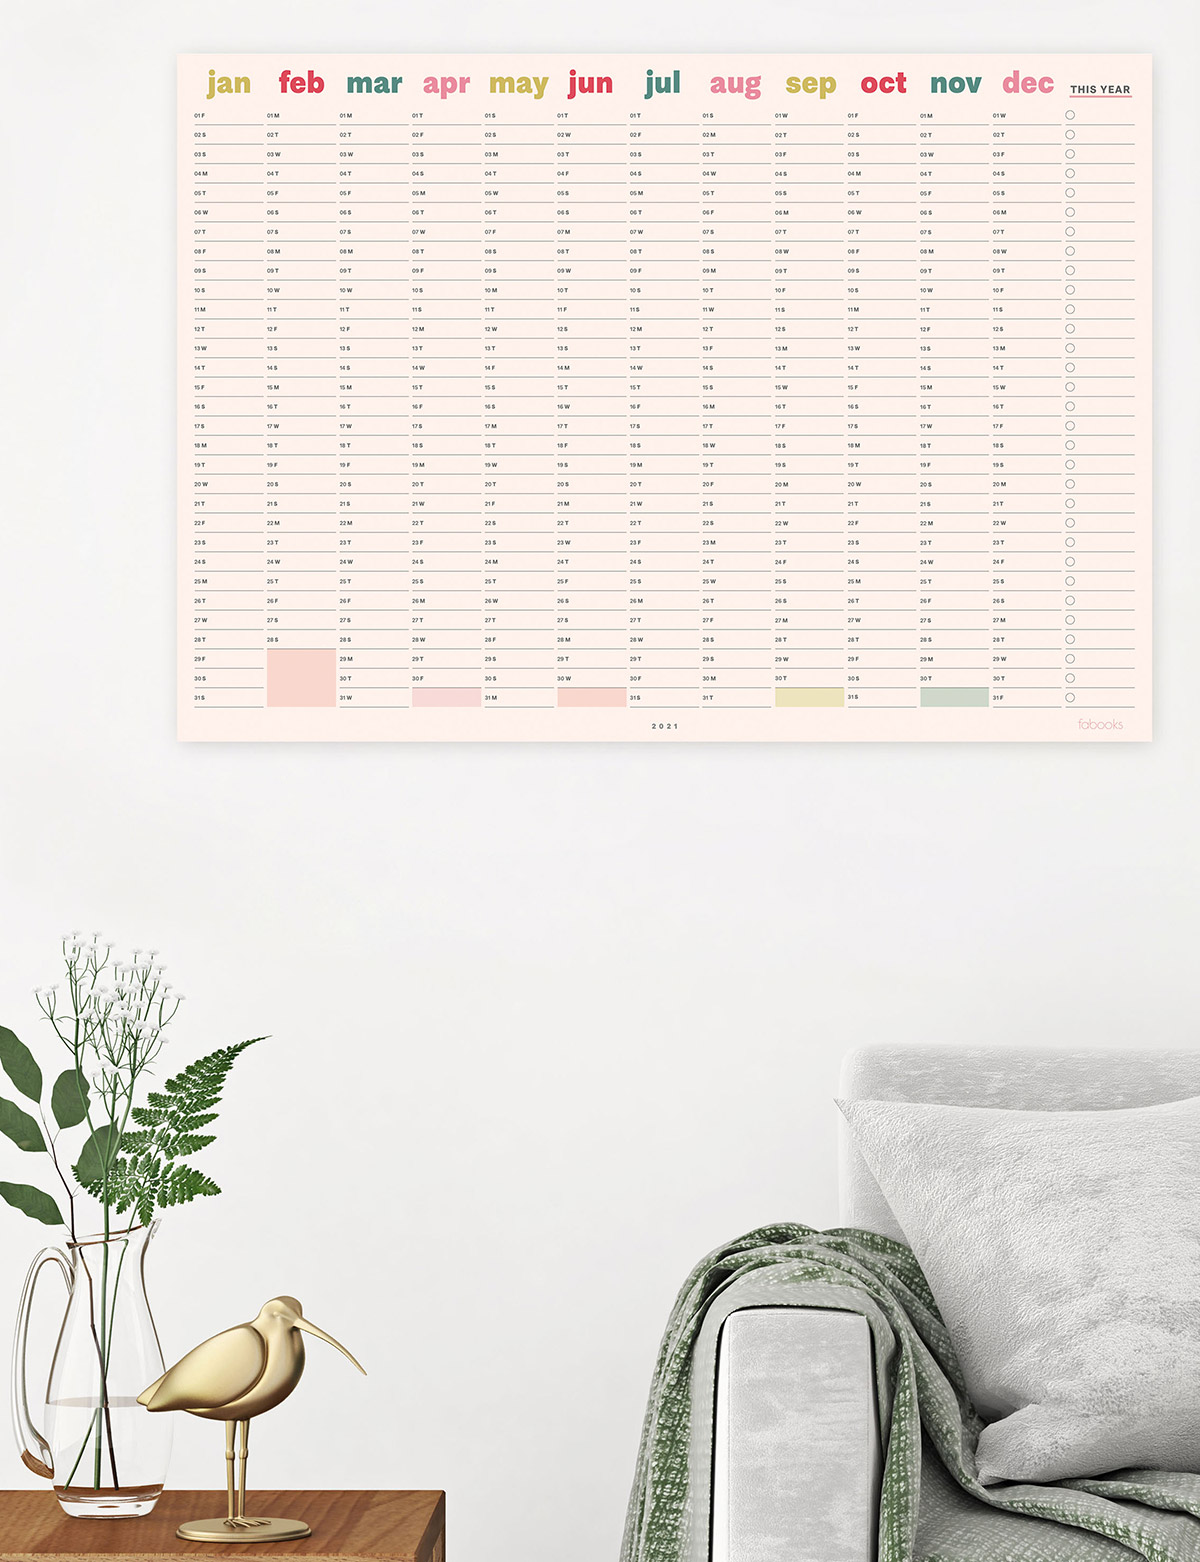 Colourful 2021 Wall Planner - New Year Calendar